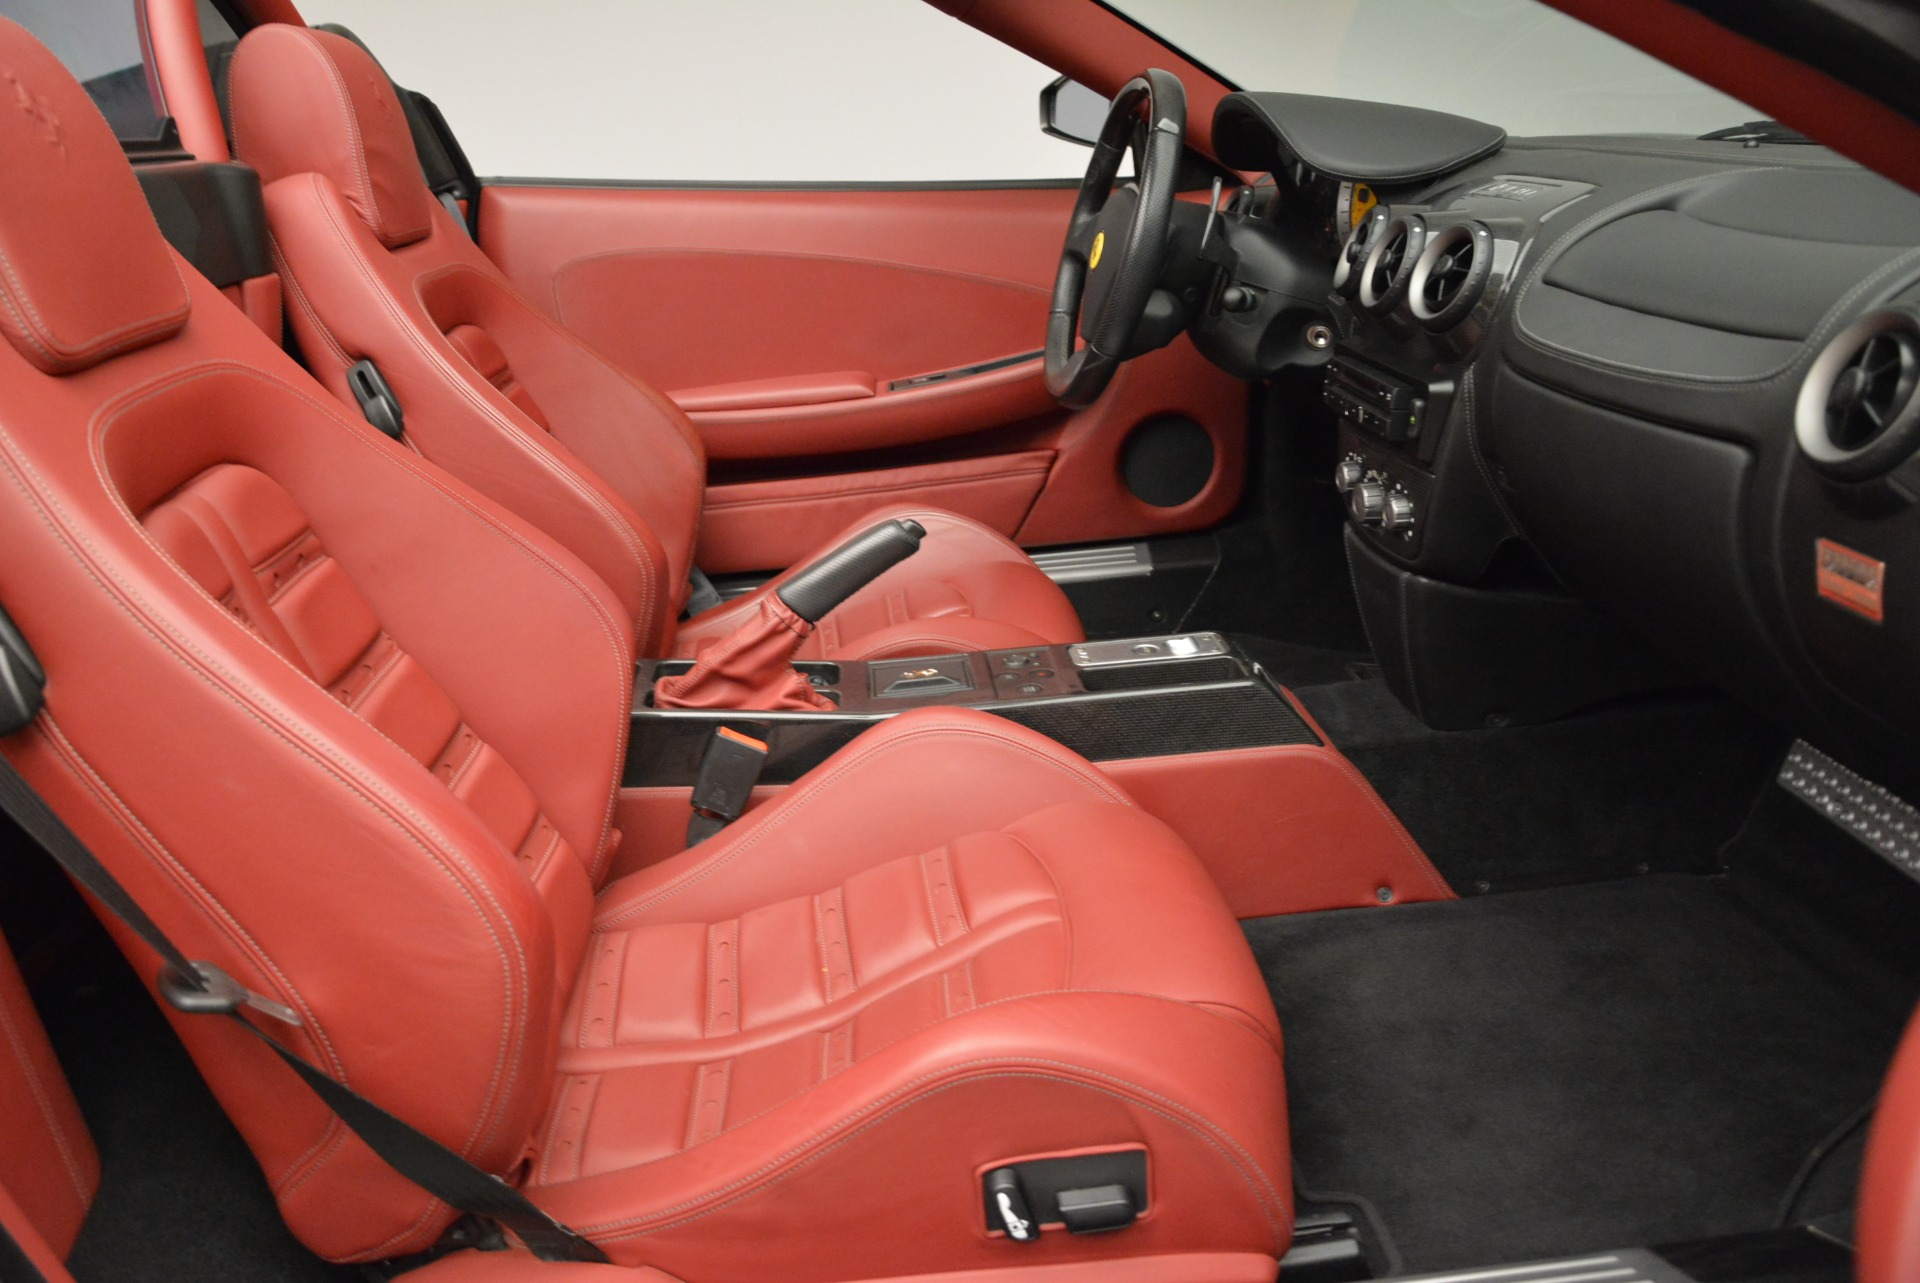 Used 2008 Ferrari F430 Spider  For Sale In Westport, CT 1883_p30